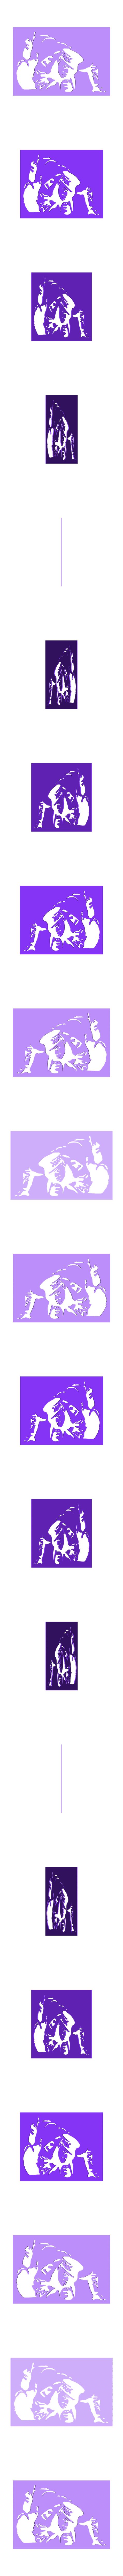 Banksy - Sniffing cop.stl Download STL file Stencil - Banksy - Sniffing cop • 3D print template, Made_In_Space